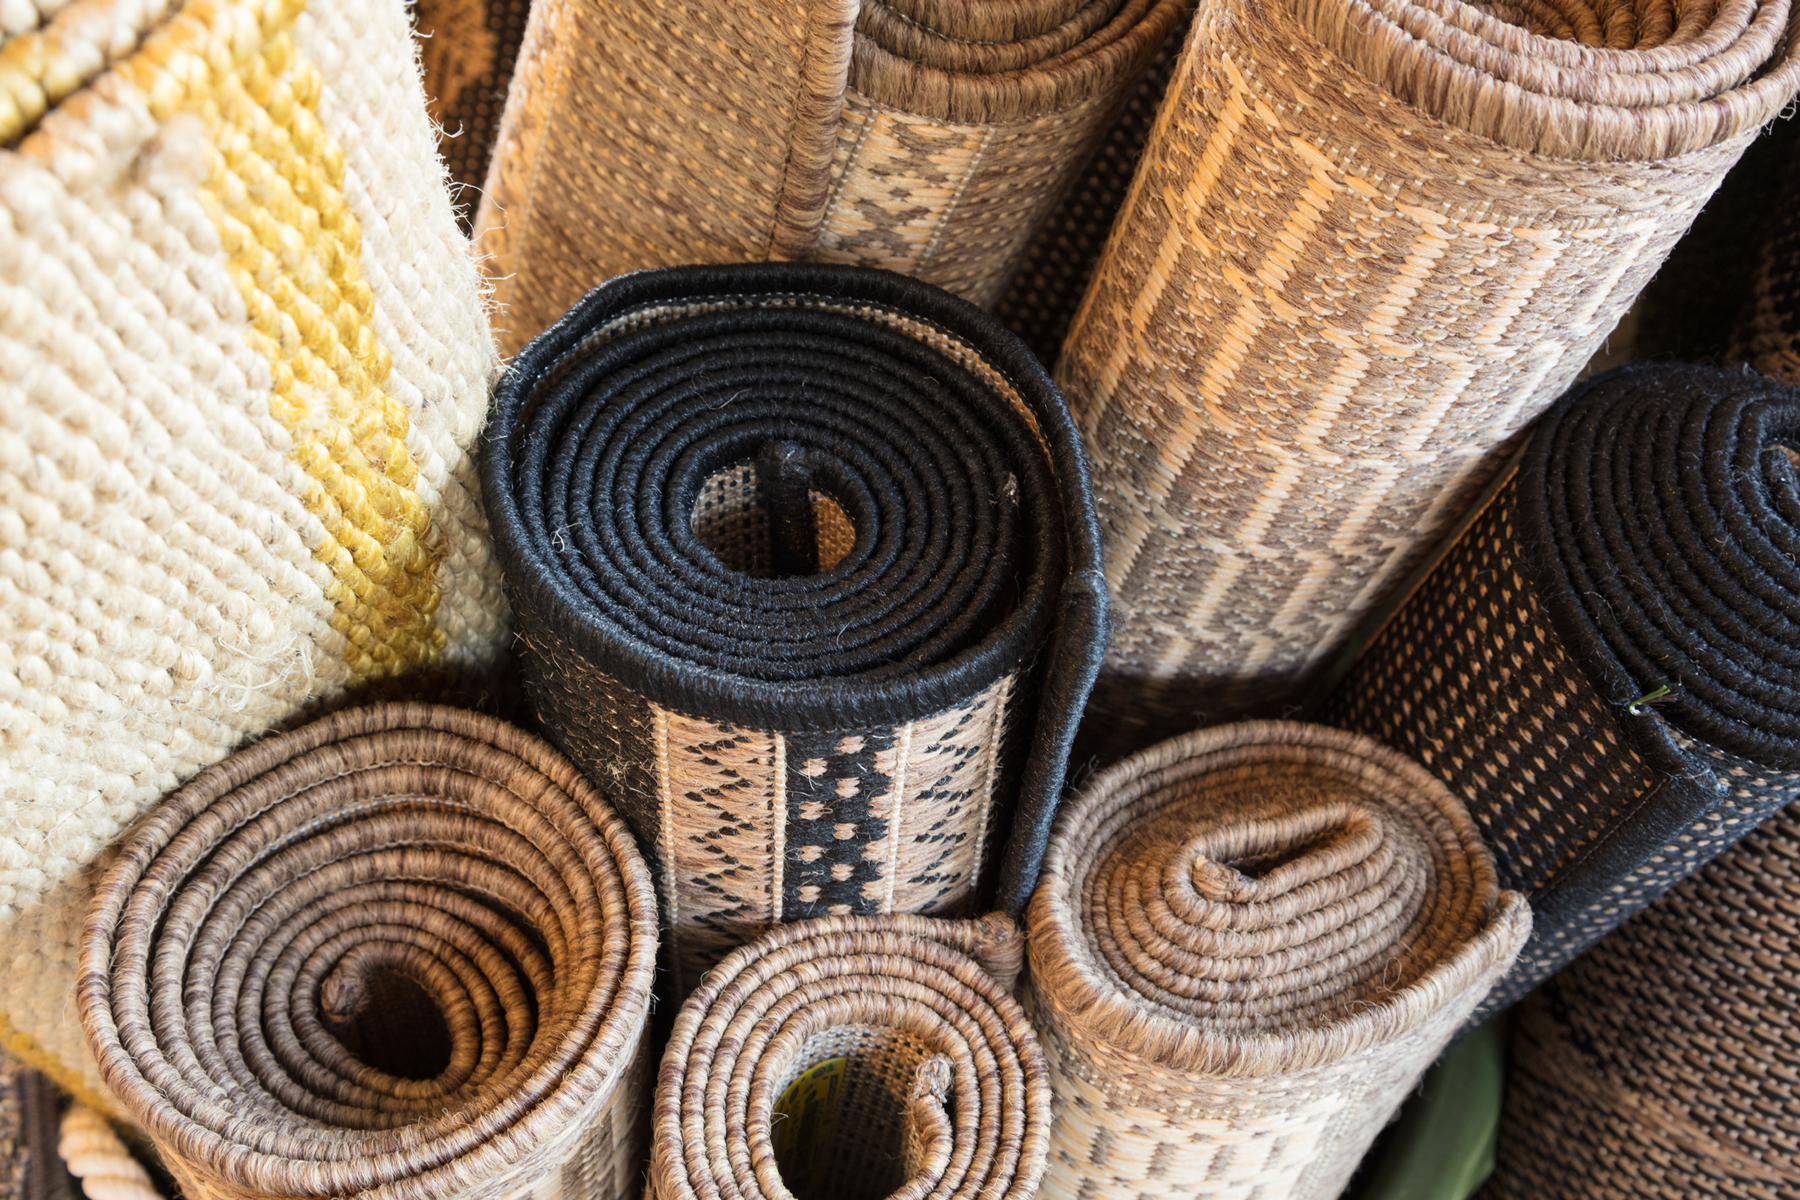 Best places to buy rugs online - rolled up affordable rugs